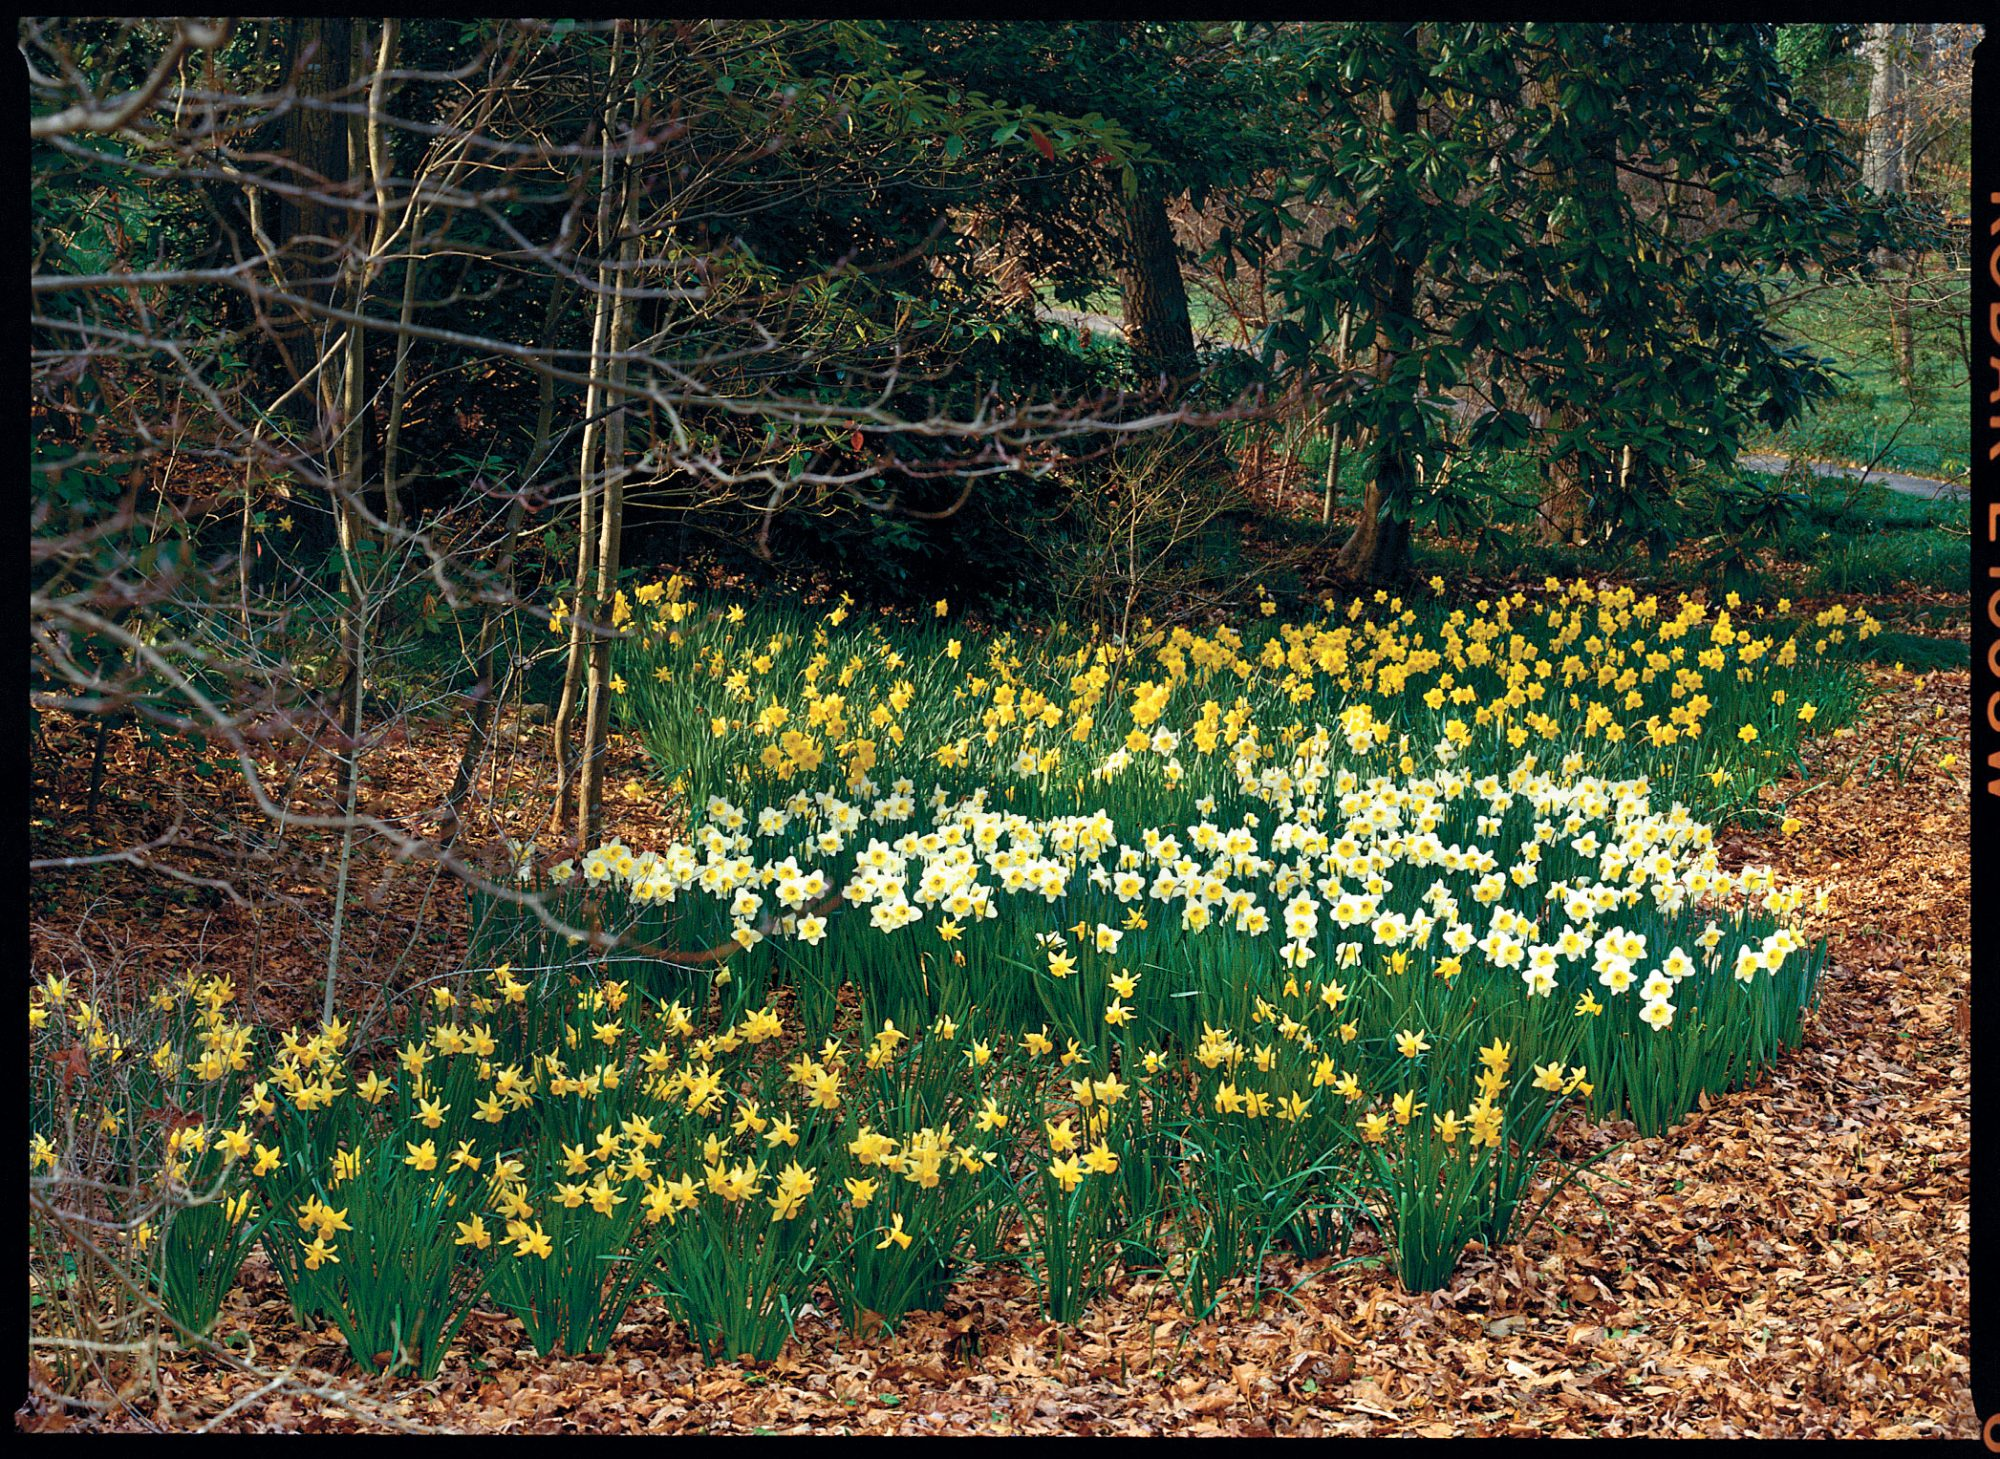 When how to plant daffodil bulbs - Buy The Best Daffodil New